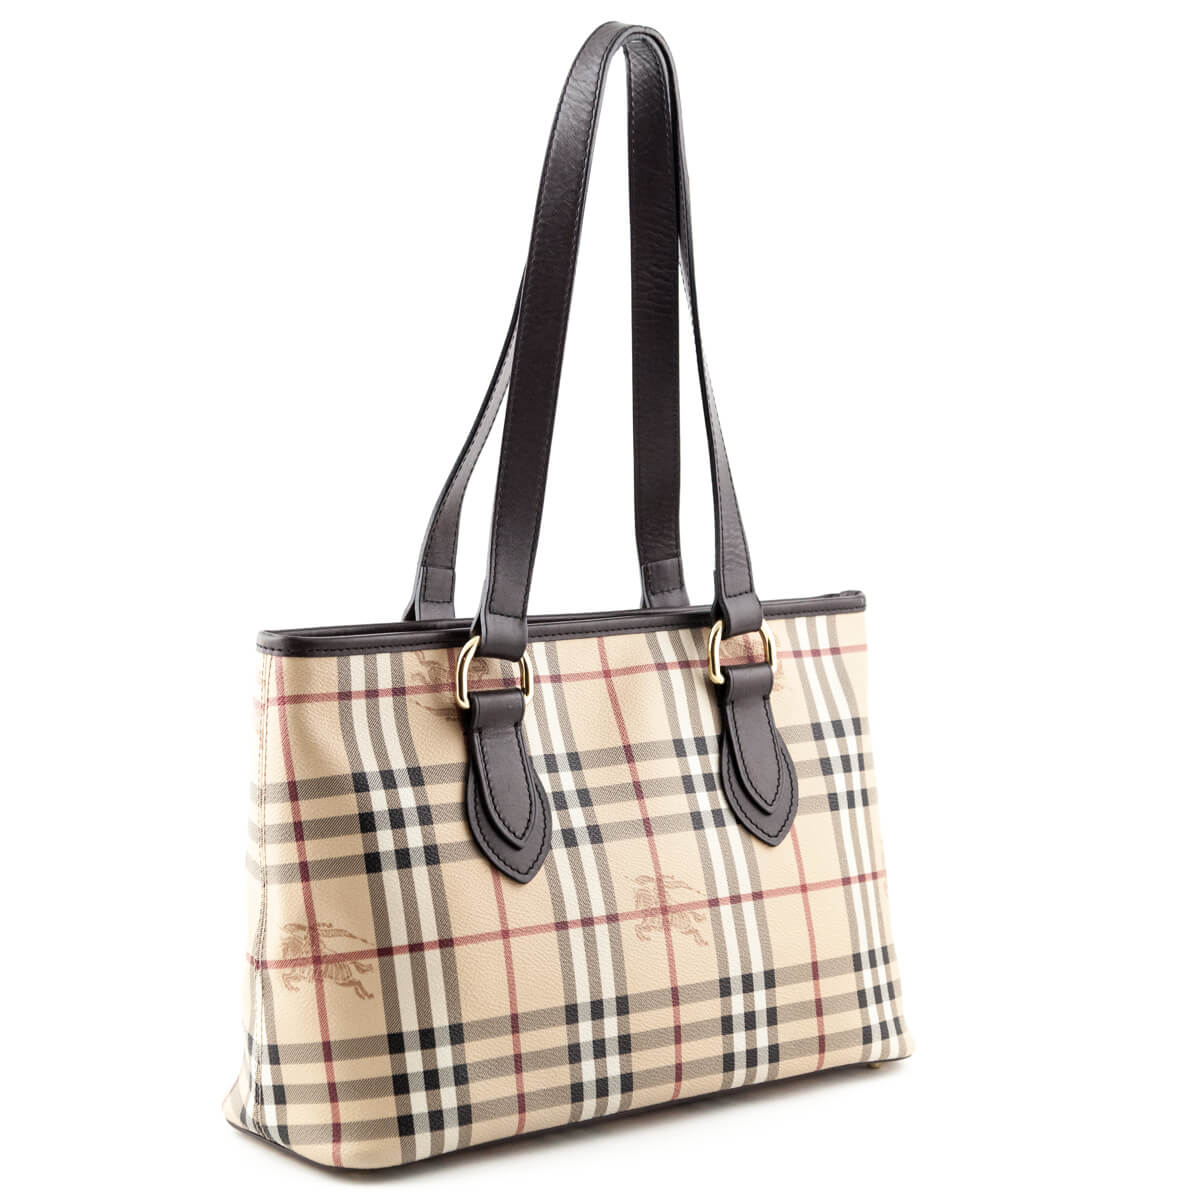 ... Burberry Haymarket Check Regent Tote - LOVE that BAG - Preowned  Authentic Designer Handbags ... 80c53596ed6f3